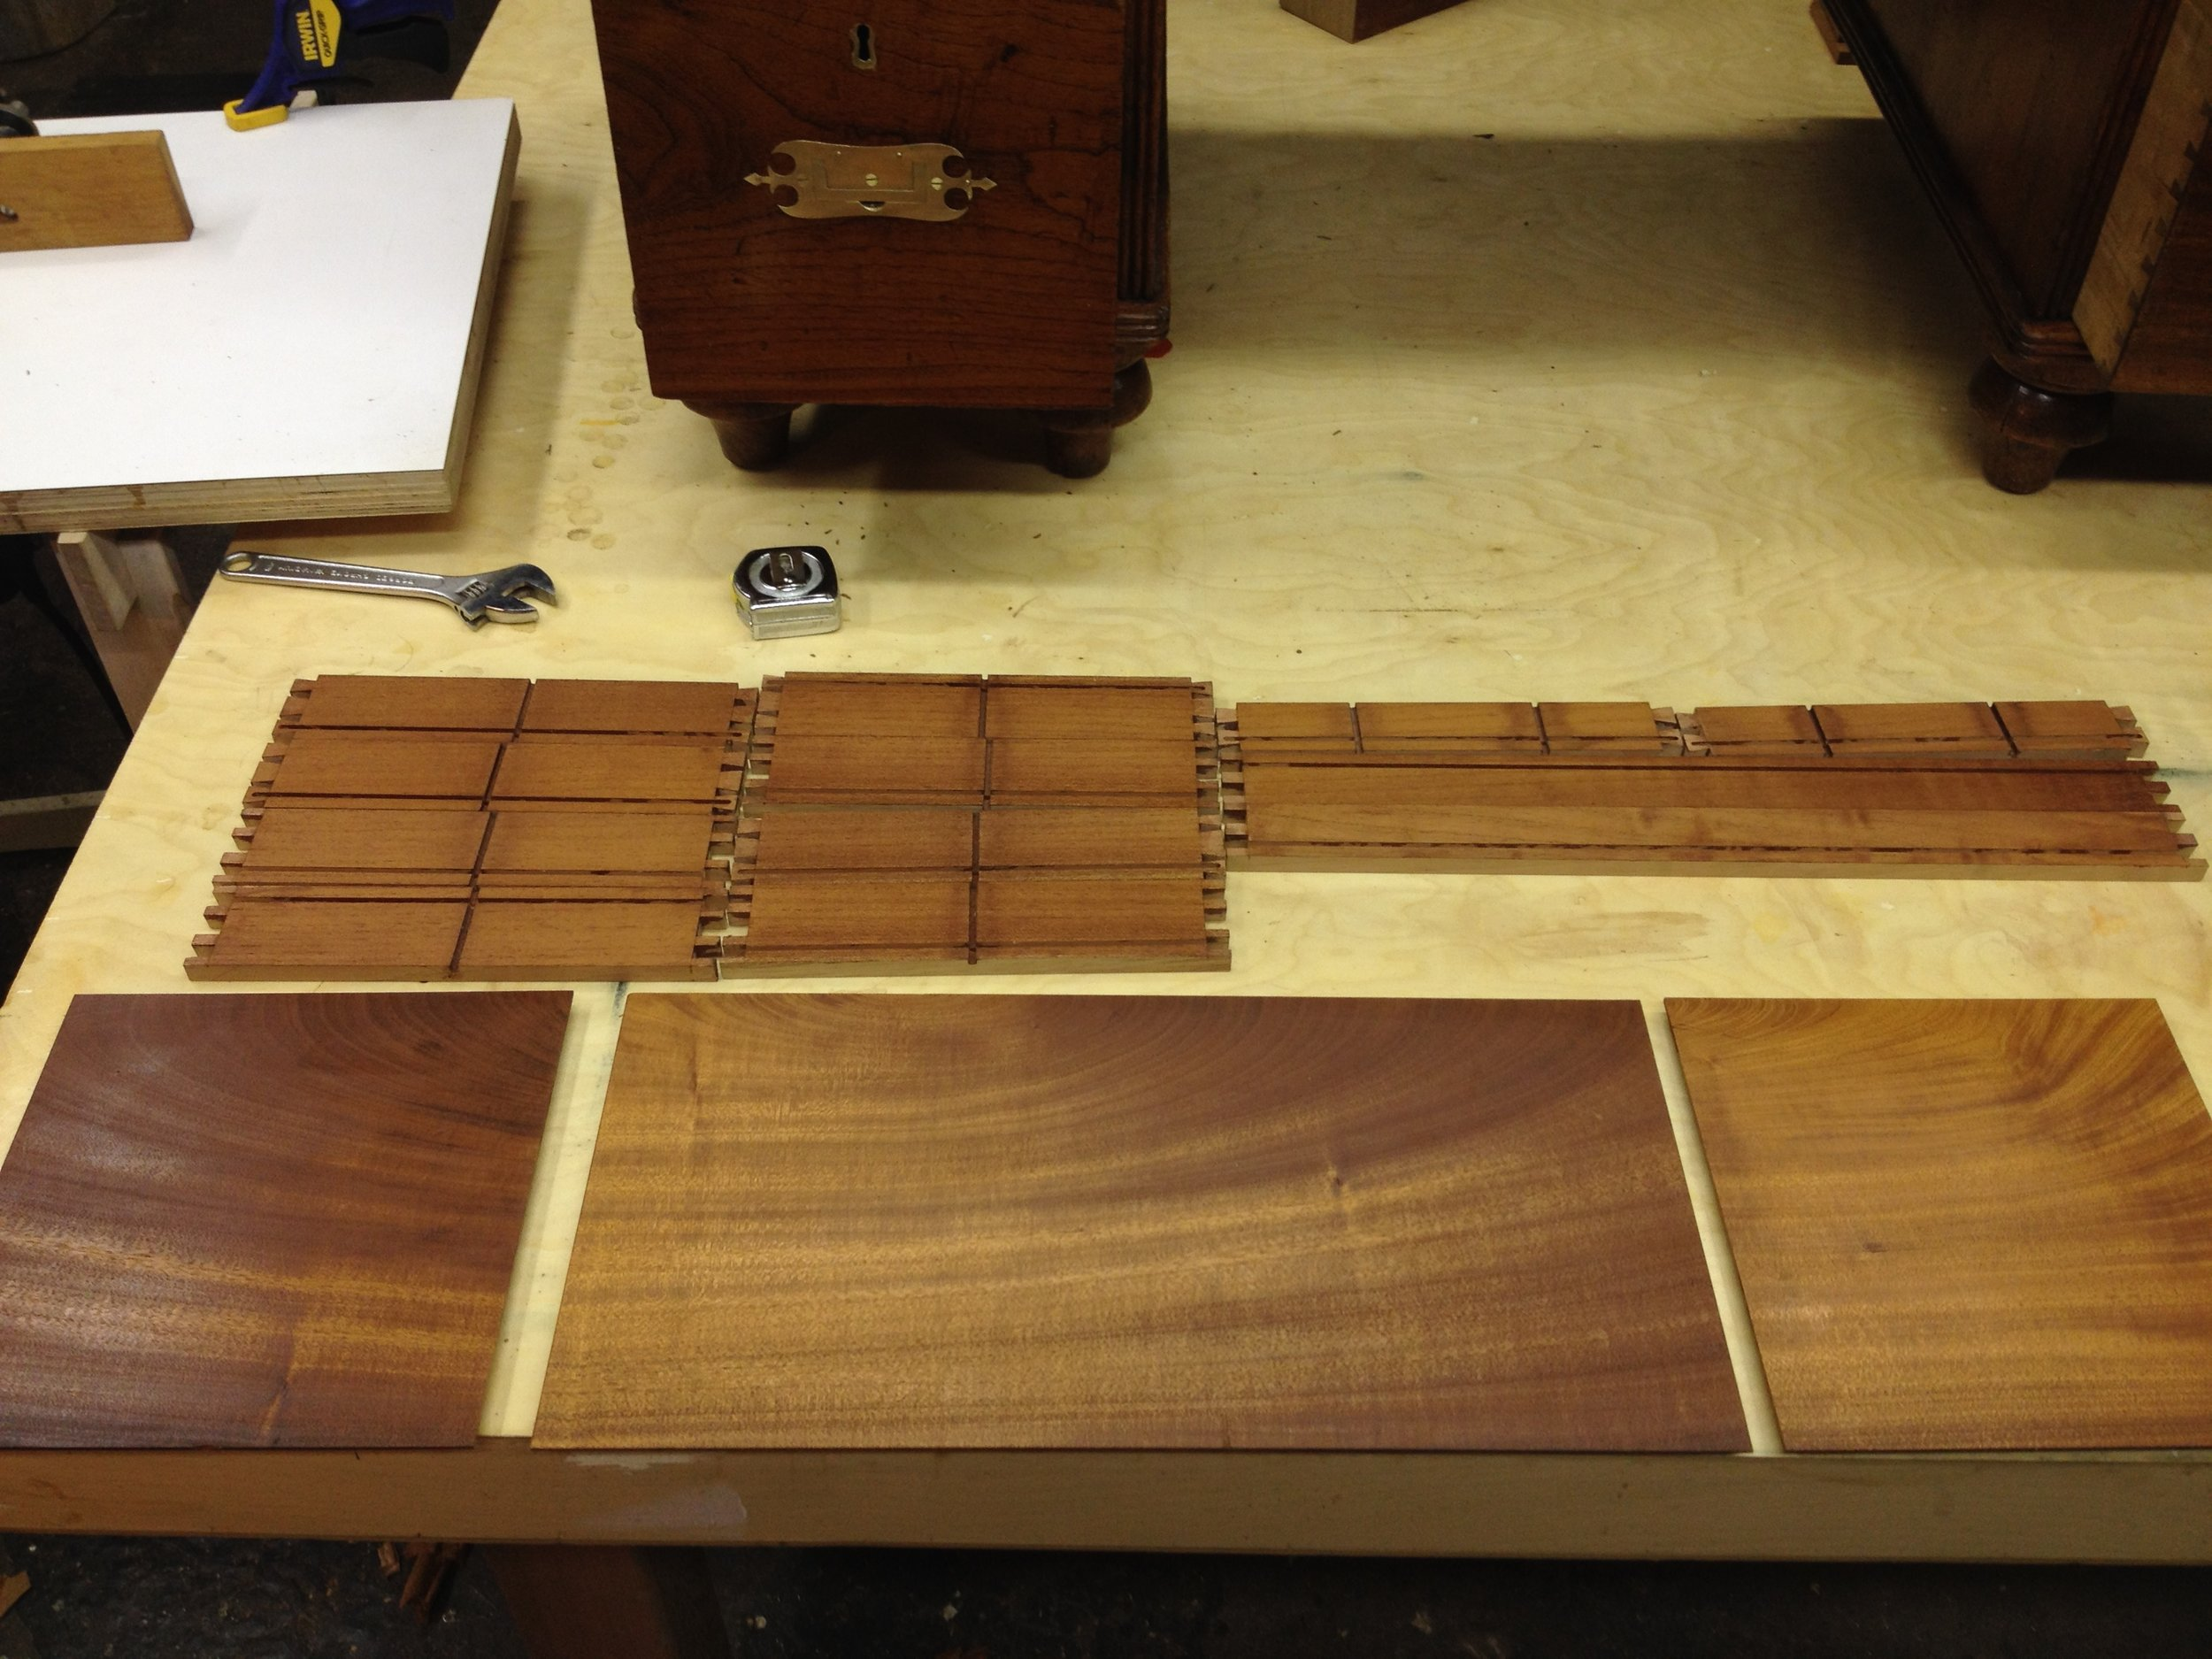 These parts will be the top trays. The sides will be spanish cedar and the bottoms, mahogany.